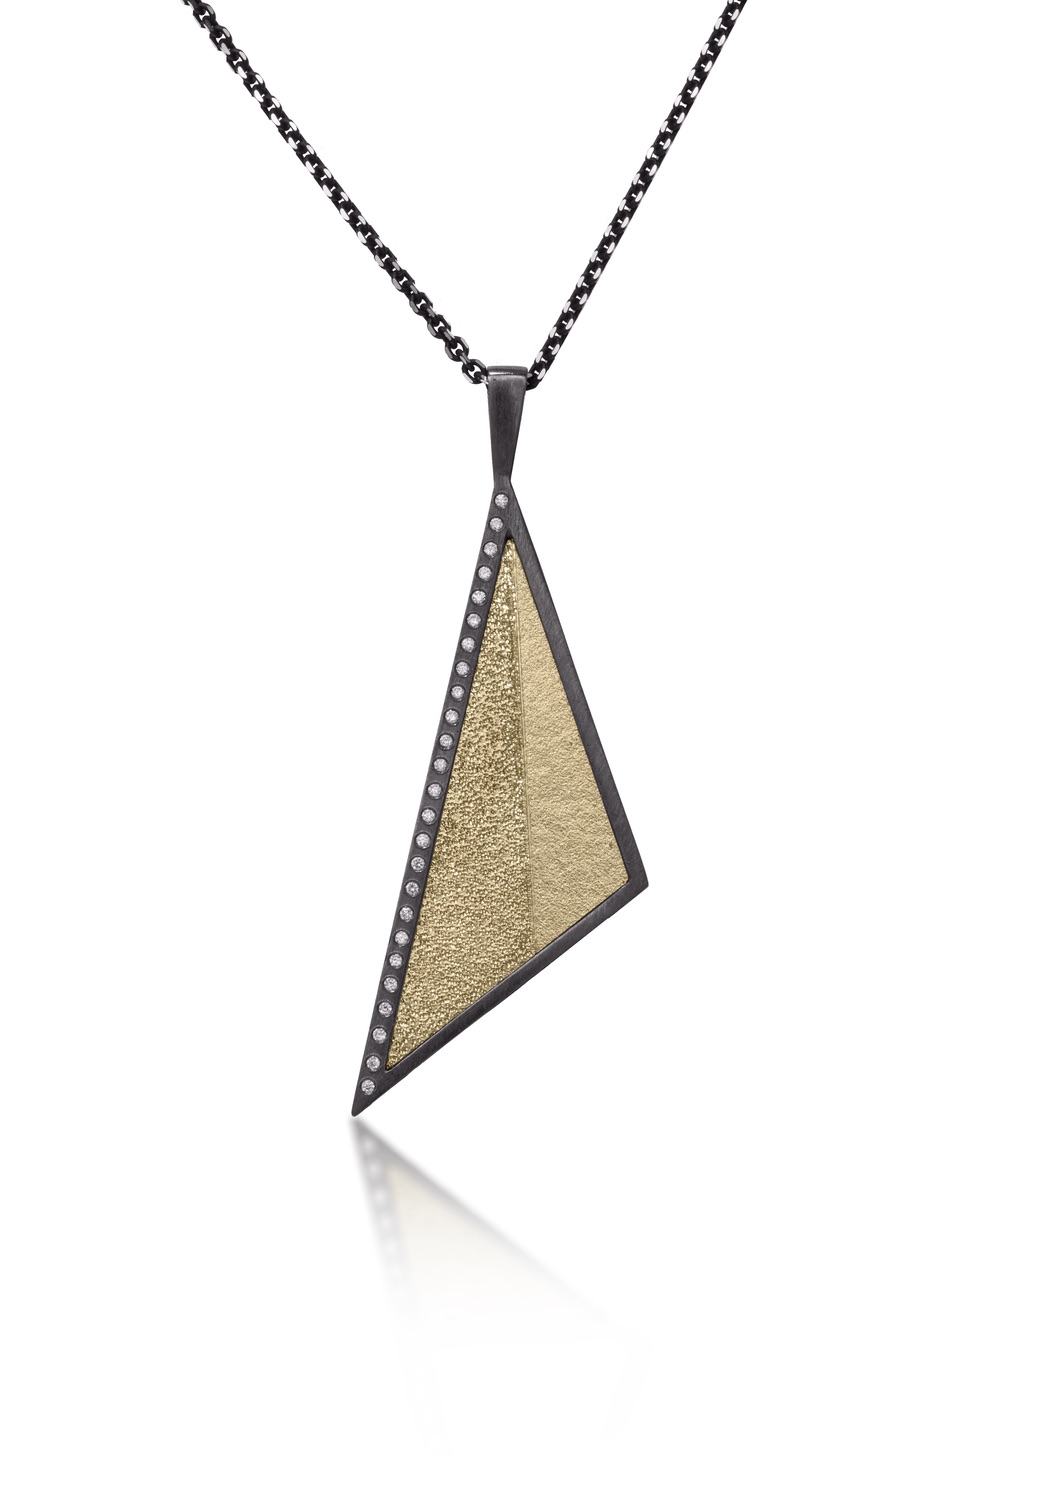 The Jewel - Elizabeth Garvin - Lookbook - Gold and Silver Triangle Necklace